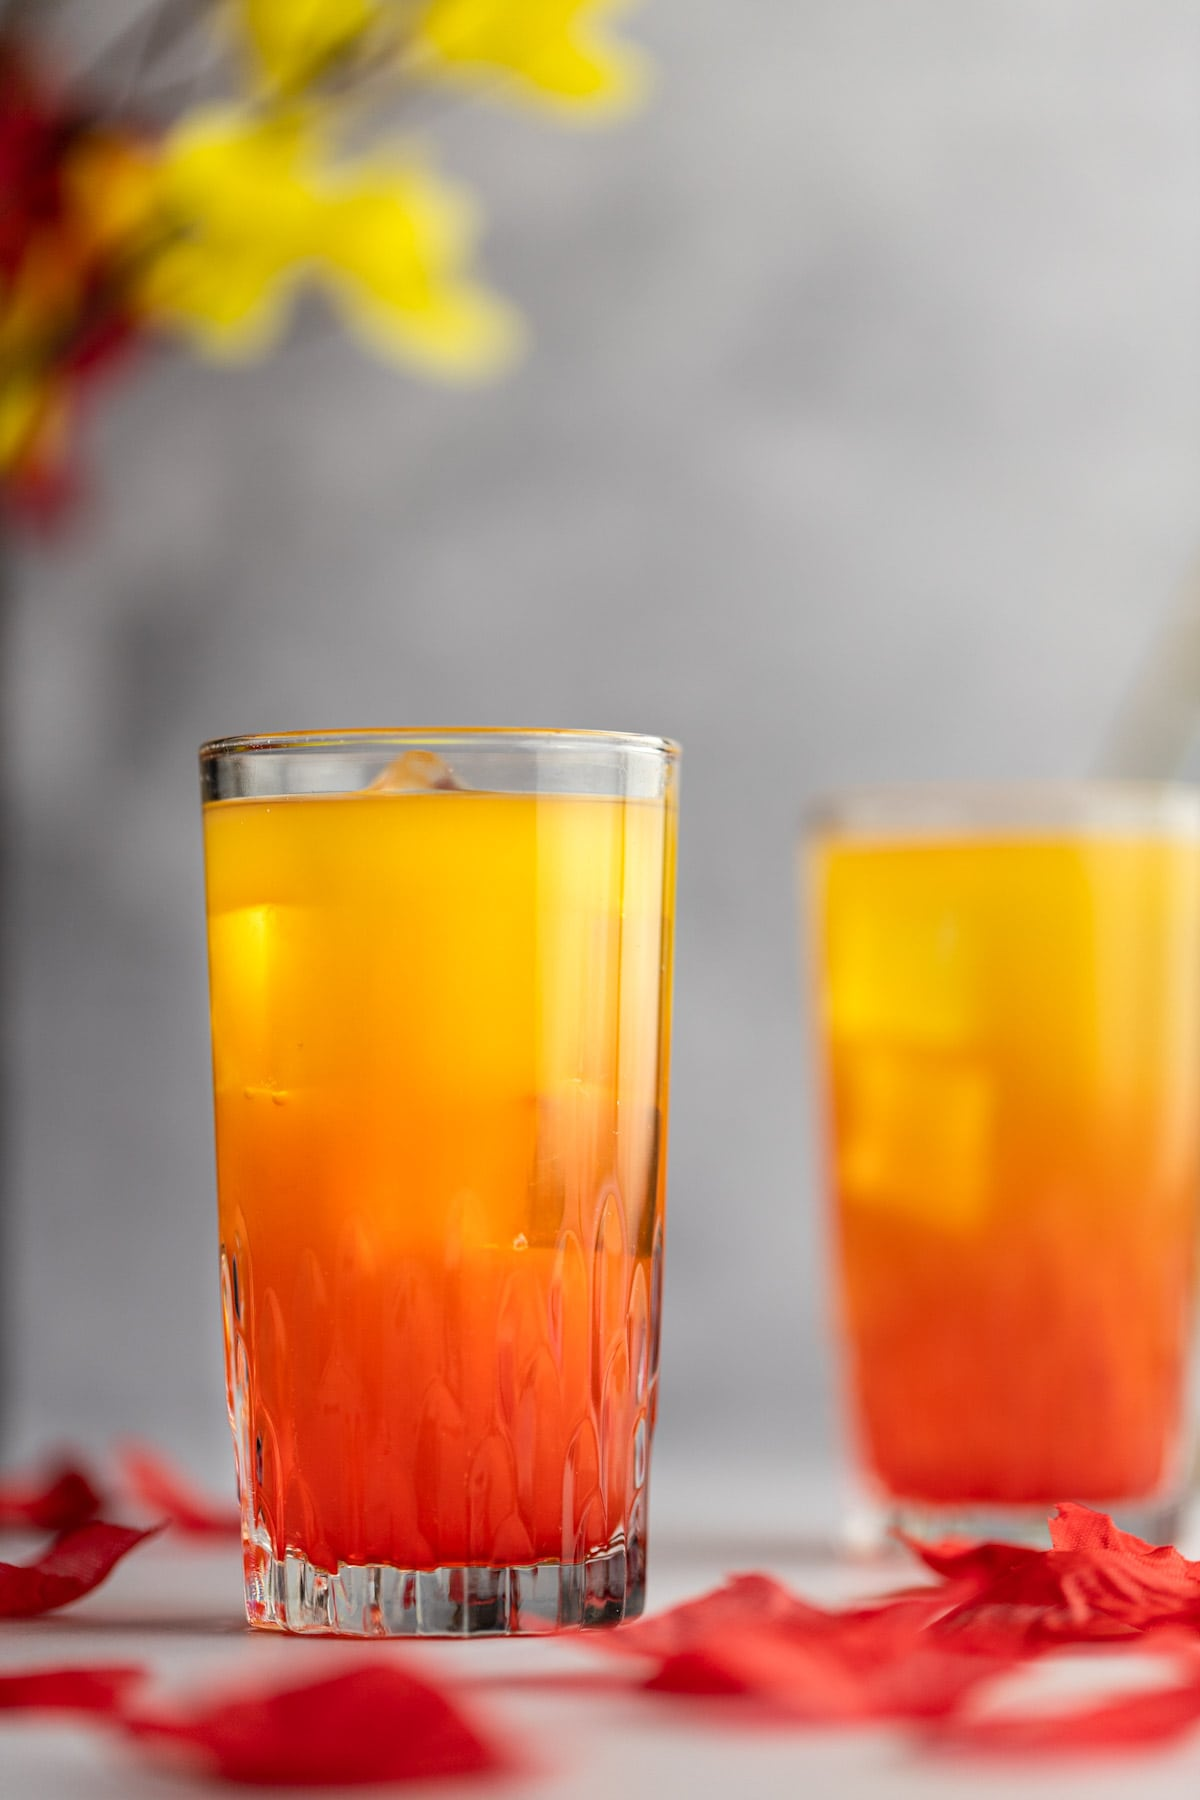 Close up of an amaretto sunrise cocktail, with rose petals scattered around the drink and flowers in the background.